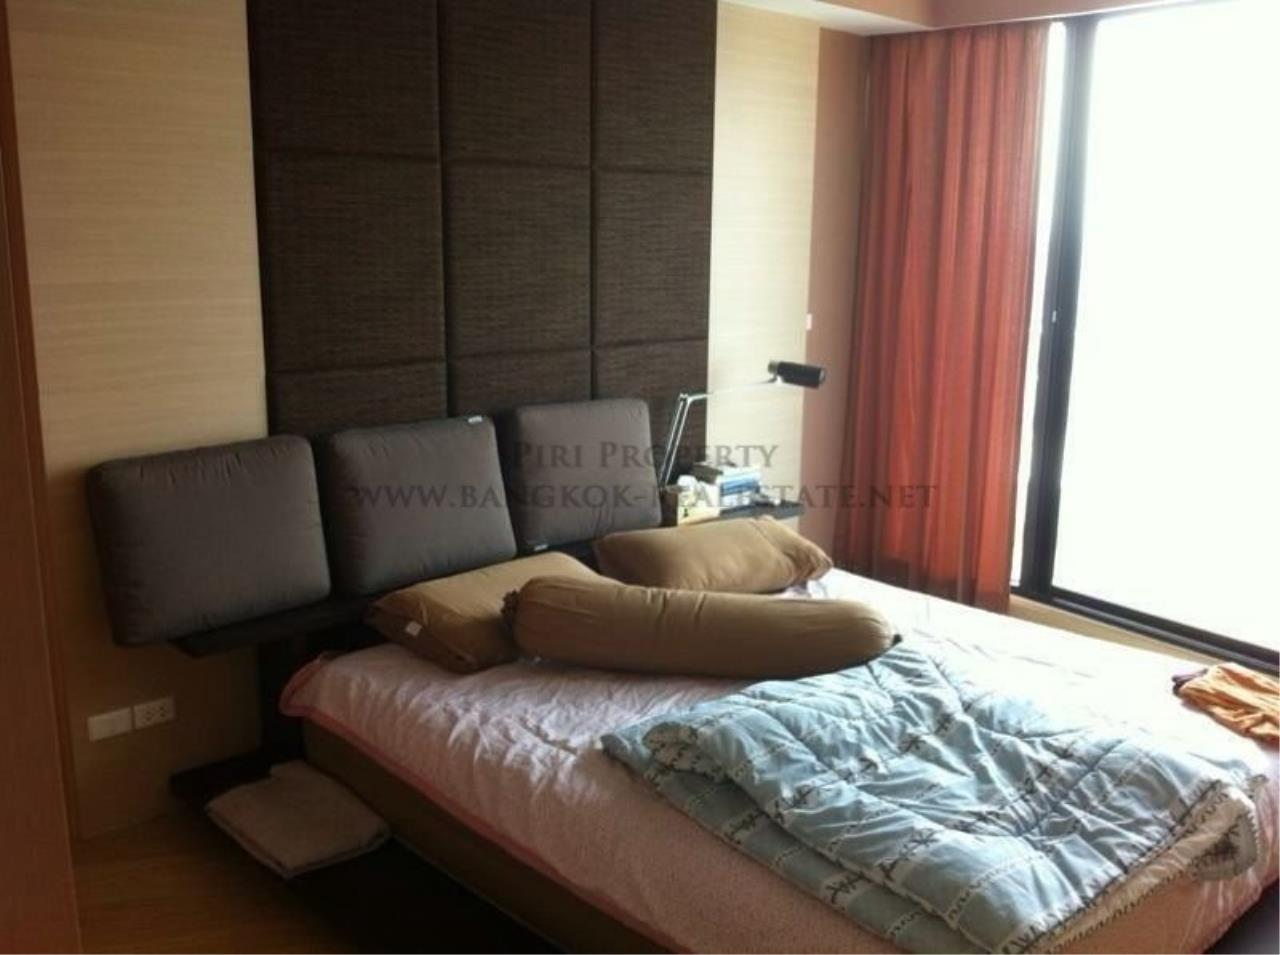 Piri Property Agency's Supalai Casa Riva for Sale - 2 Bedroom on 29th Floor - Fully furnished 1